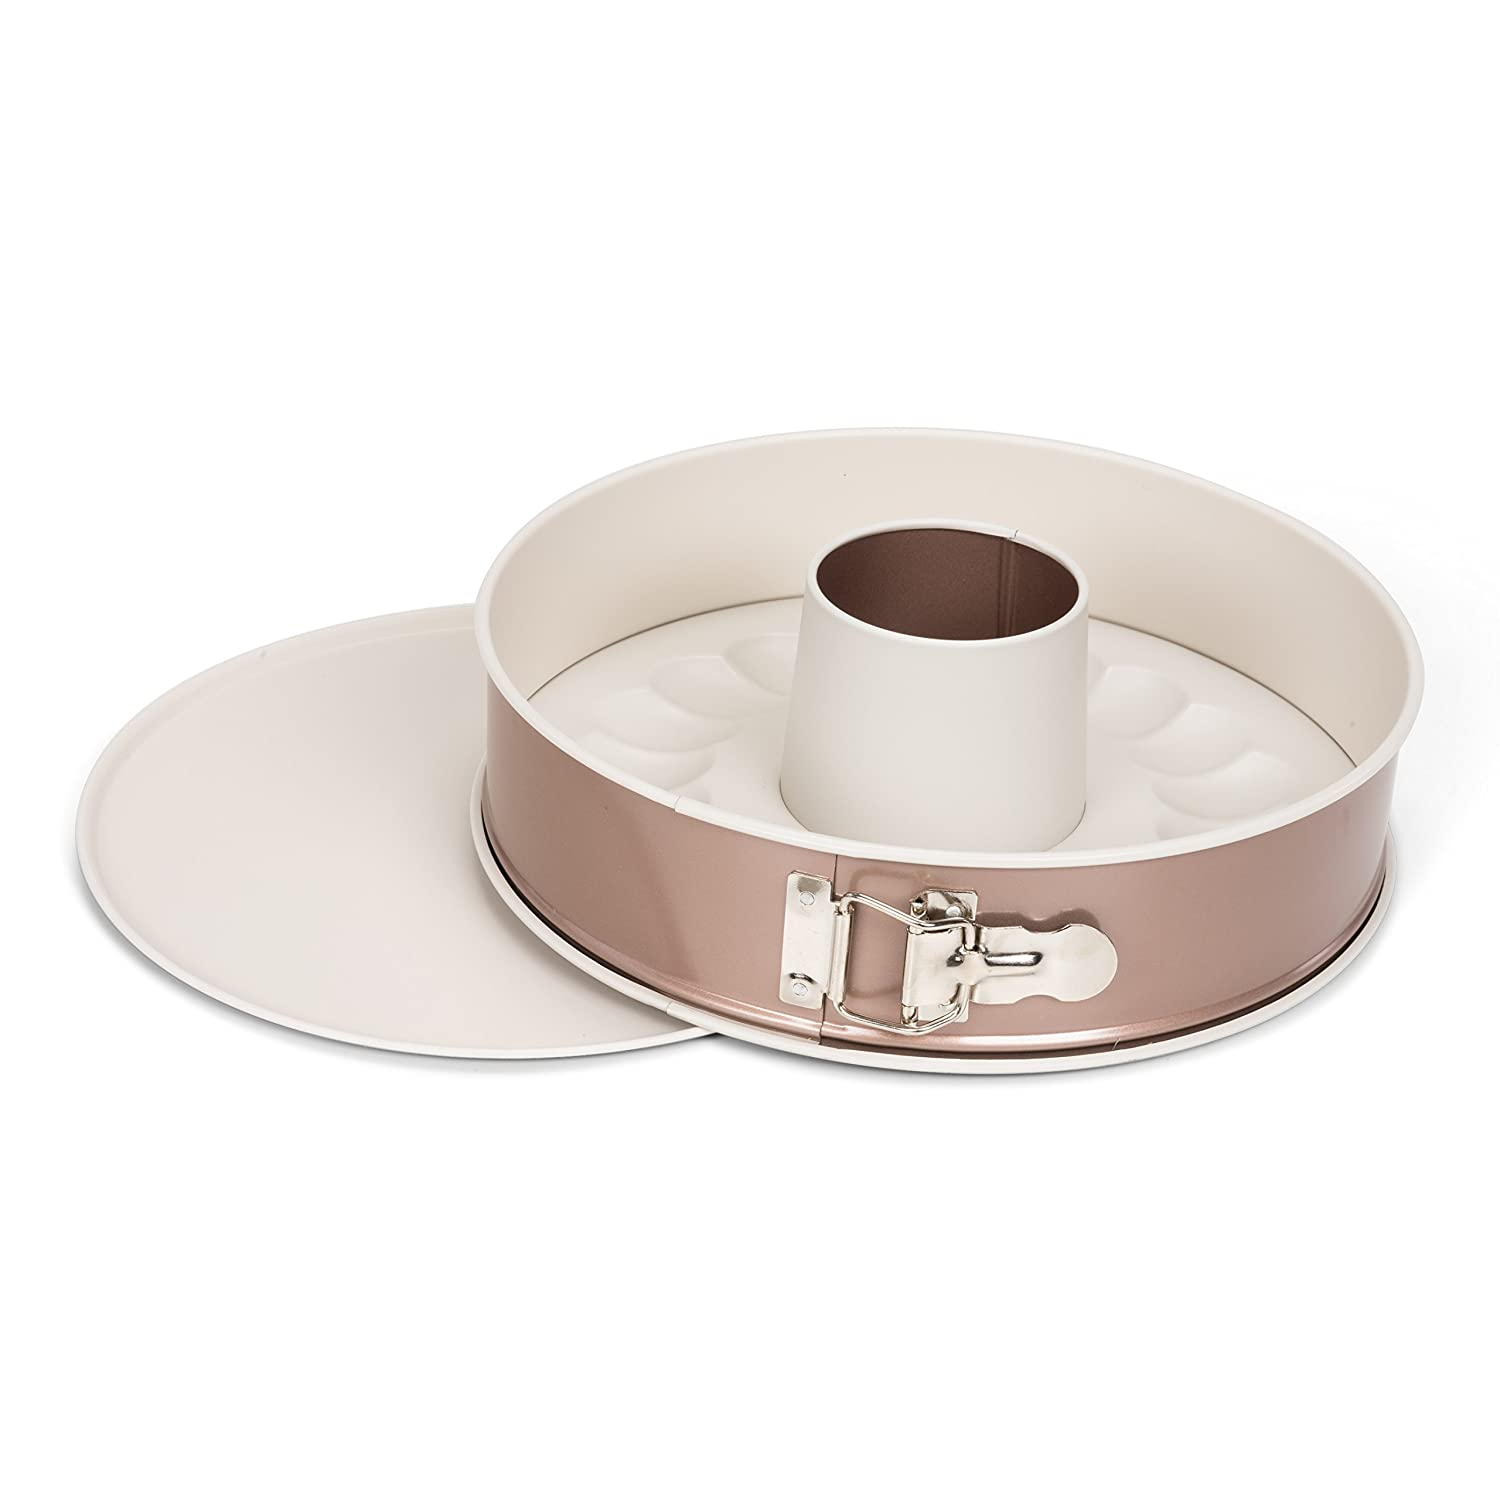 Patisse 03346 Three bakeware, Copper Off White